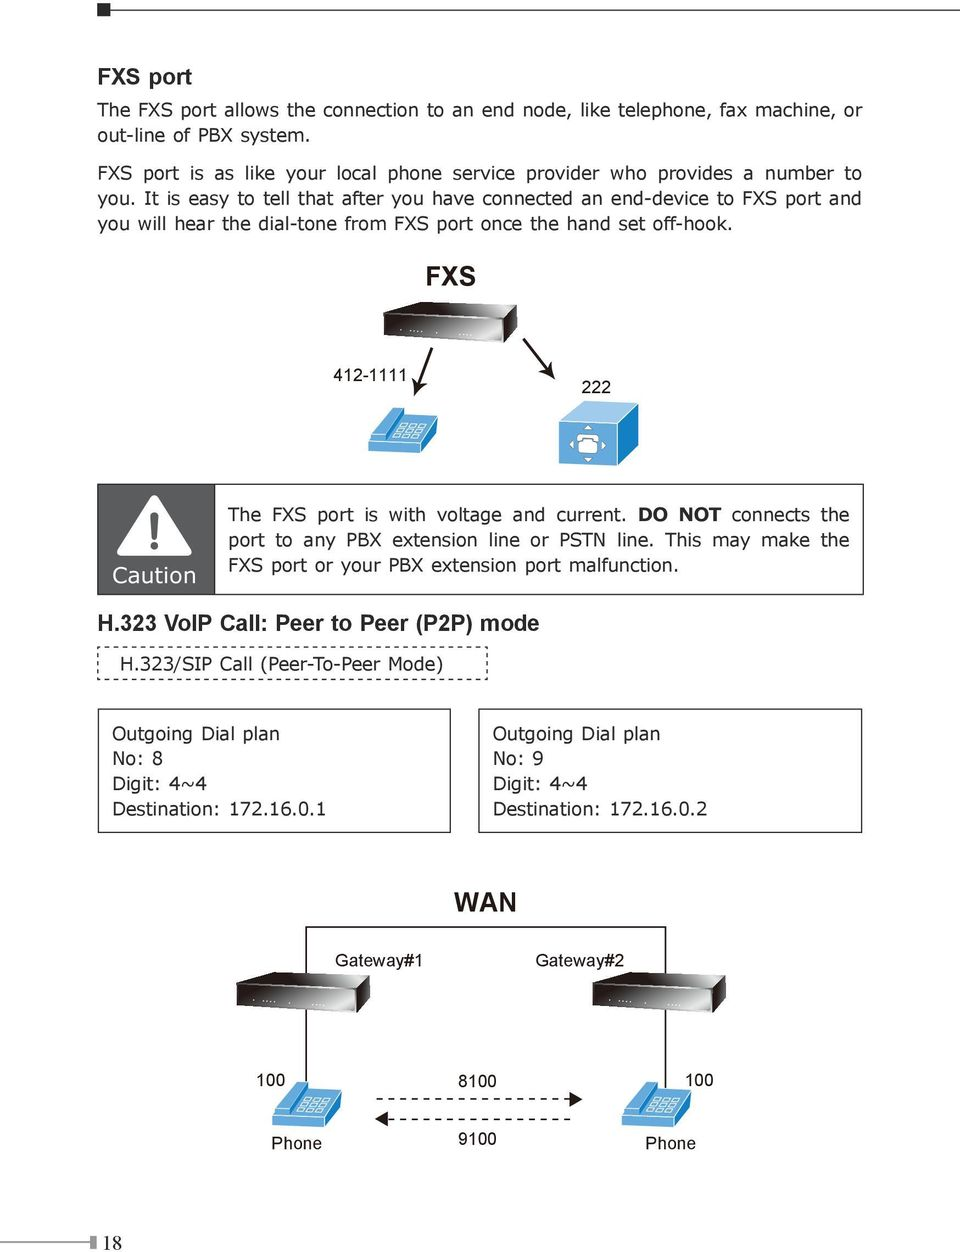 323 VoIP Call: Peer to Peer (P2P) mode Gateway#1 The FXS port is with voltage and current. DO NOT connects the port to any PBX extension line or PSTN line.